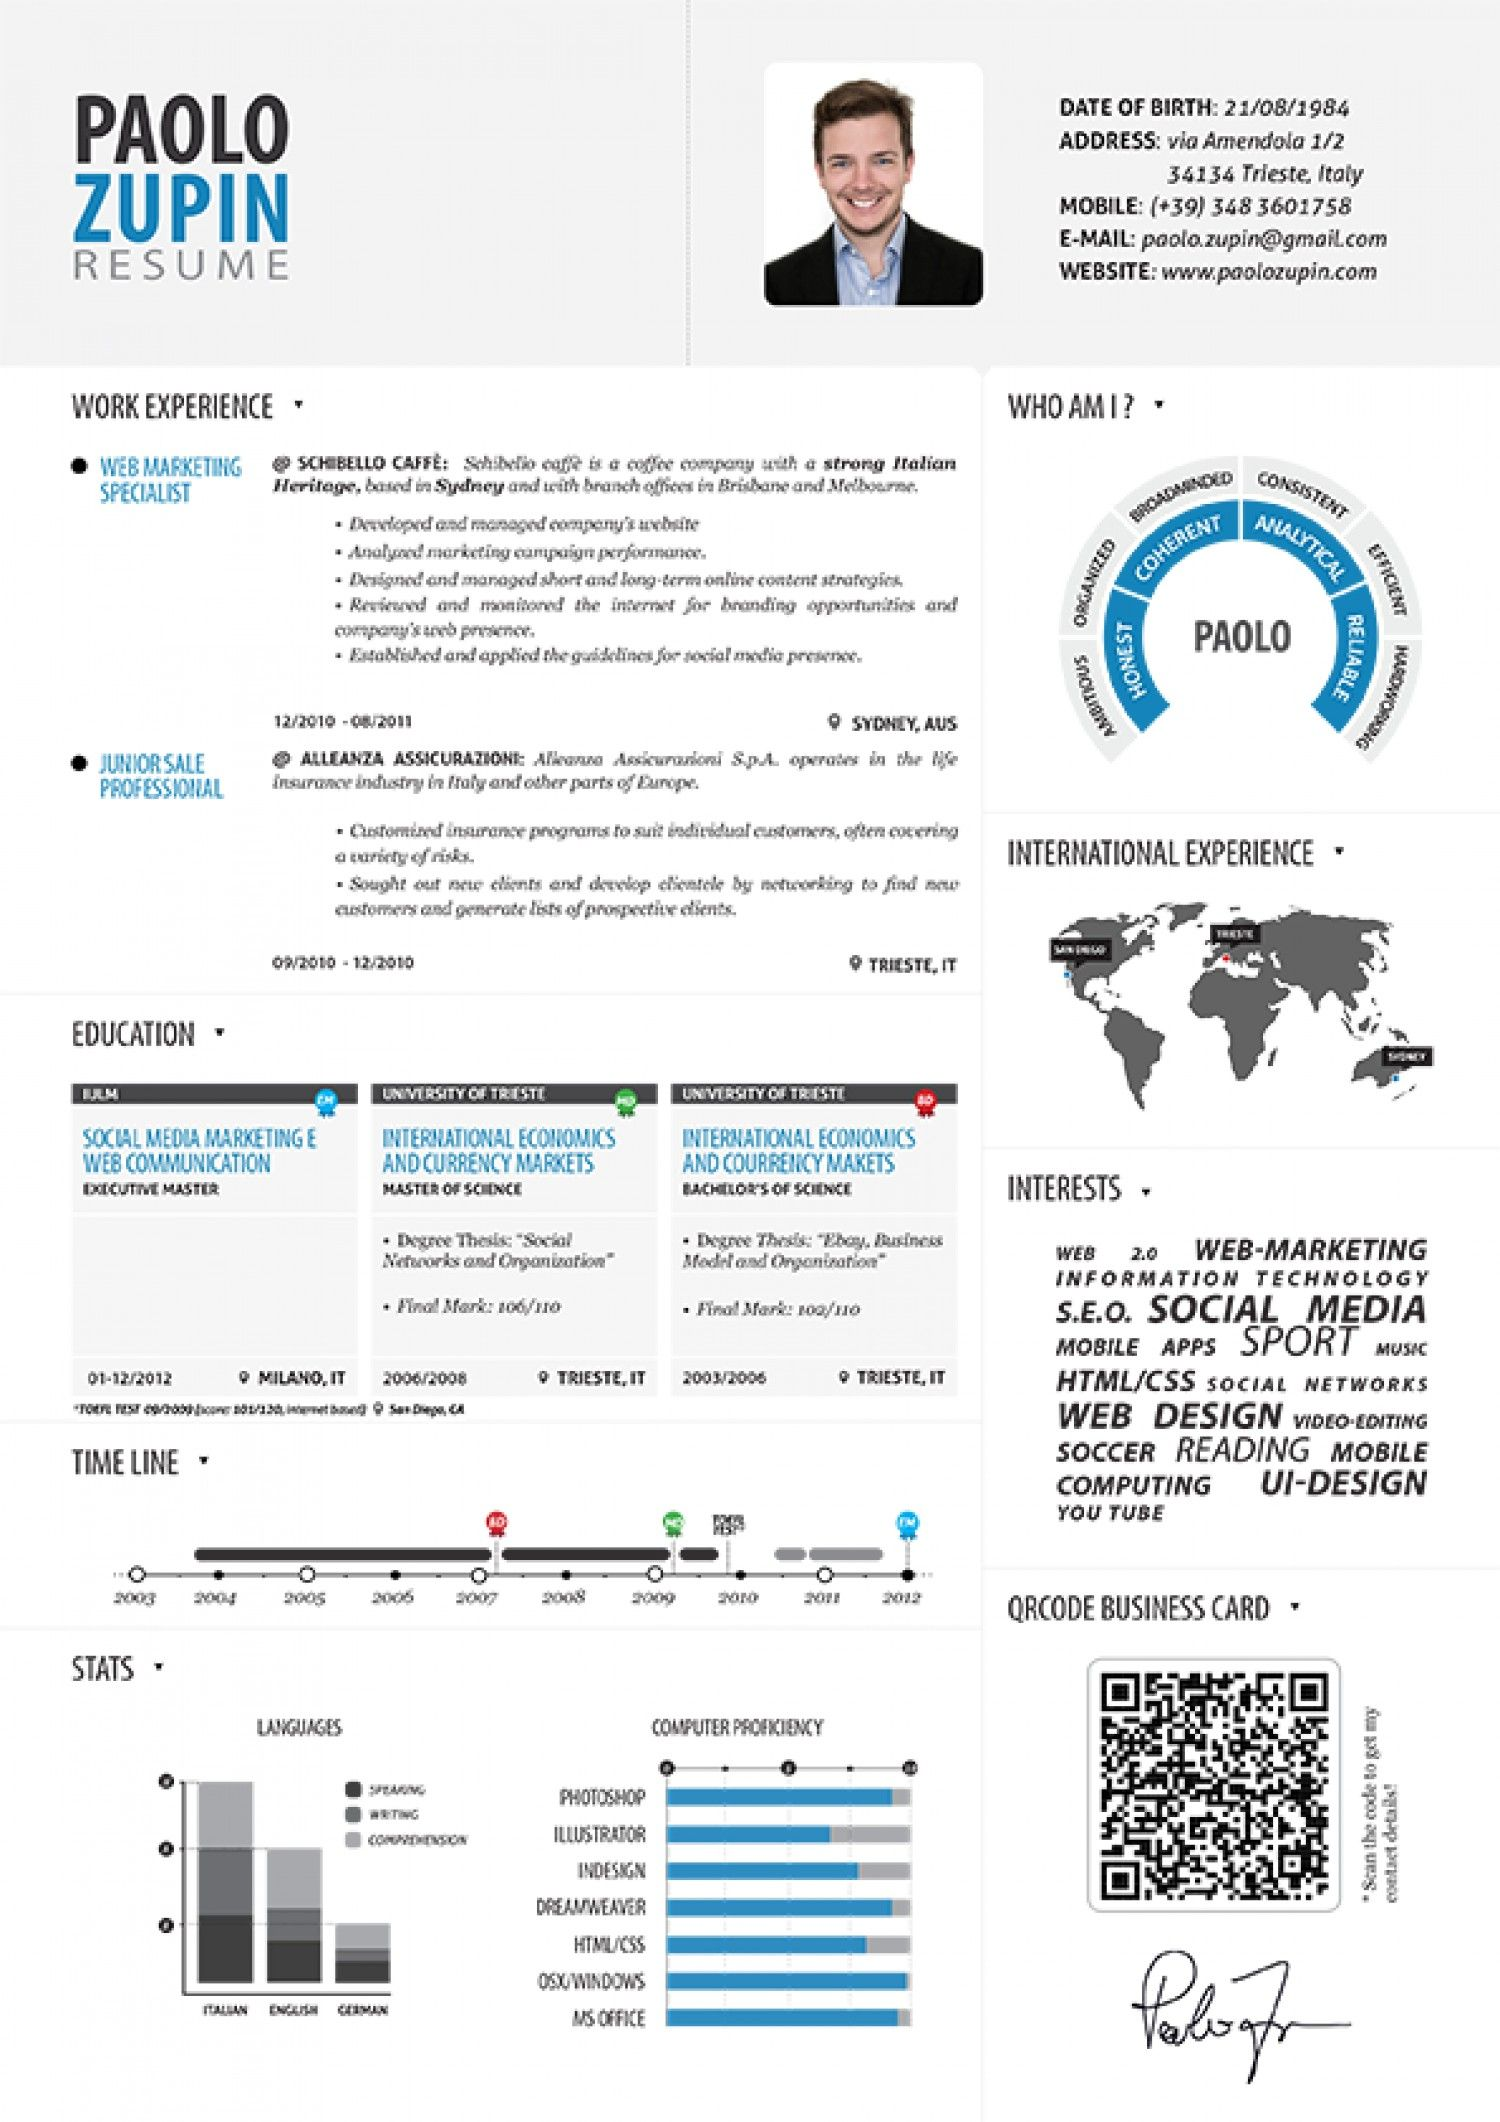 Opposenewapstandardsus  Mesmerizing  Images About Resume  Cv Design On Pinterest  Infographic  With Lovely  Images About Resume  Cv Design On Pinterest  Infographic Resume Resume And Resume Design With Captivating Best Resume Also College Resume Template In Addition Microsoft Resume Templates And Resume Fonts As Well As What Is A Cover Letter For A Resume Additionally It Resume From Pinterestcom With Opposenewapstandardsus  Lovely  Images About Resume  Cv Design On Pinterest  Infographic  With Captivating  Images About Resume  Cv Design On Pinterest  Infographic Resume Resume And Resume Design And Mesmerizing Best Resume Also College Resume Template In Addition Microsoft Resume Templates From Pinterestcom